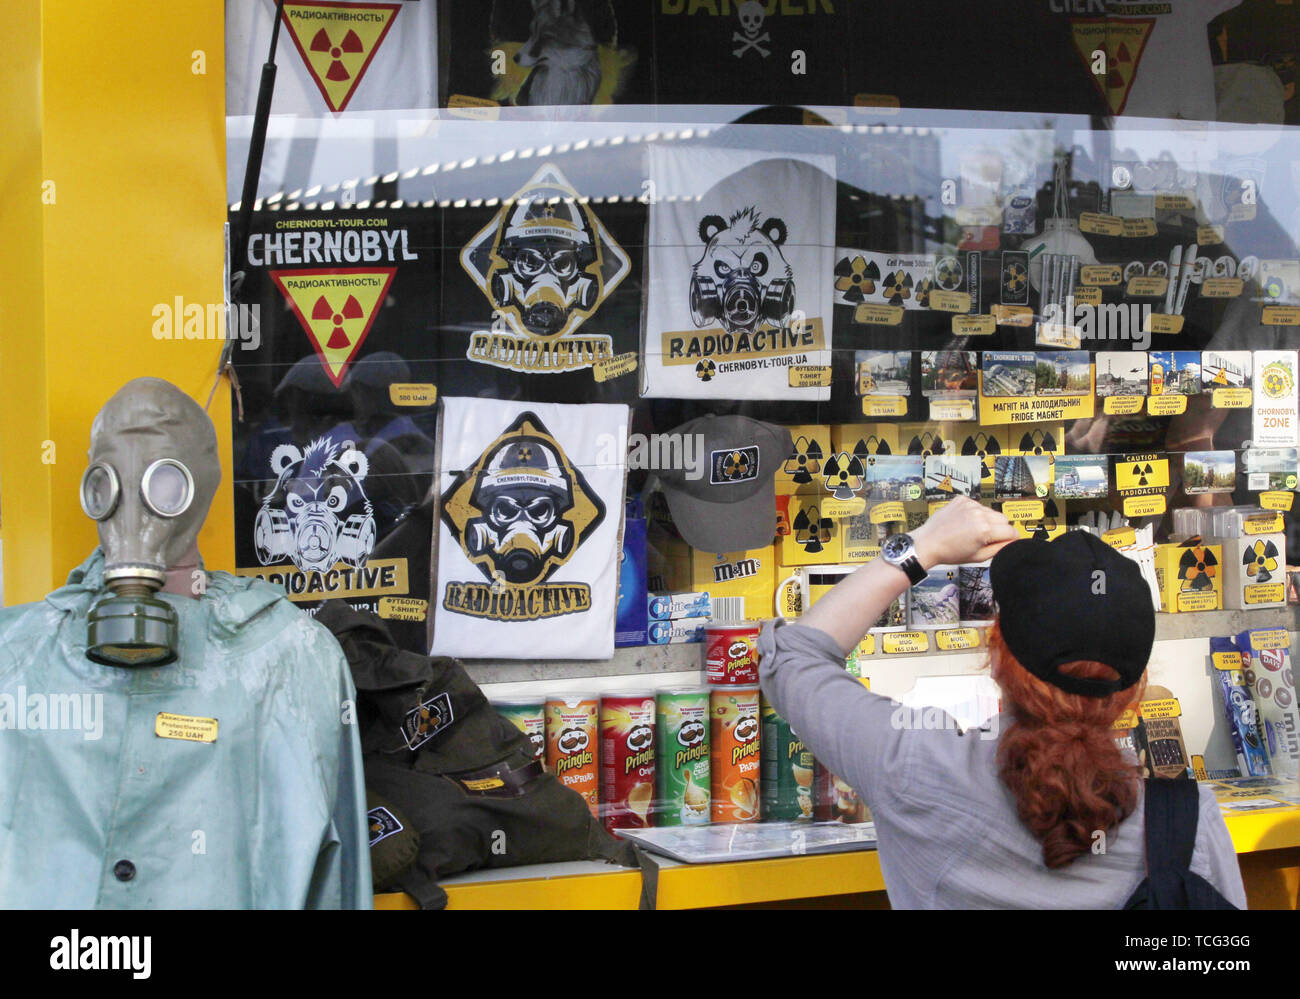 Kiev, Ukraine. 7th June, 2019. A visitor looks on a window of a Chernobyl souvenir shop at the entrance to the Chernobyl exclusion zone in Chernobyl, Ukraine, on 7 June 2019. The success of a U.S. HBO's television miniseries 'Chernobyl' has renewed interest around the world on Ukraine's 1986 nuclear disaster. Tourism to Chernobyl has spiked 40% following the debut of the HBO series in May, tour agencies reported . Last April Ukrainians marked the 33rd anniversary of the Chernobyl disaster in then-Soviet Ukraine, caused by a botched safety test in the fourth reactor of the atomic plant that - Stock Image